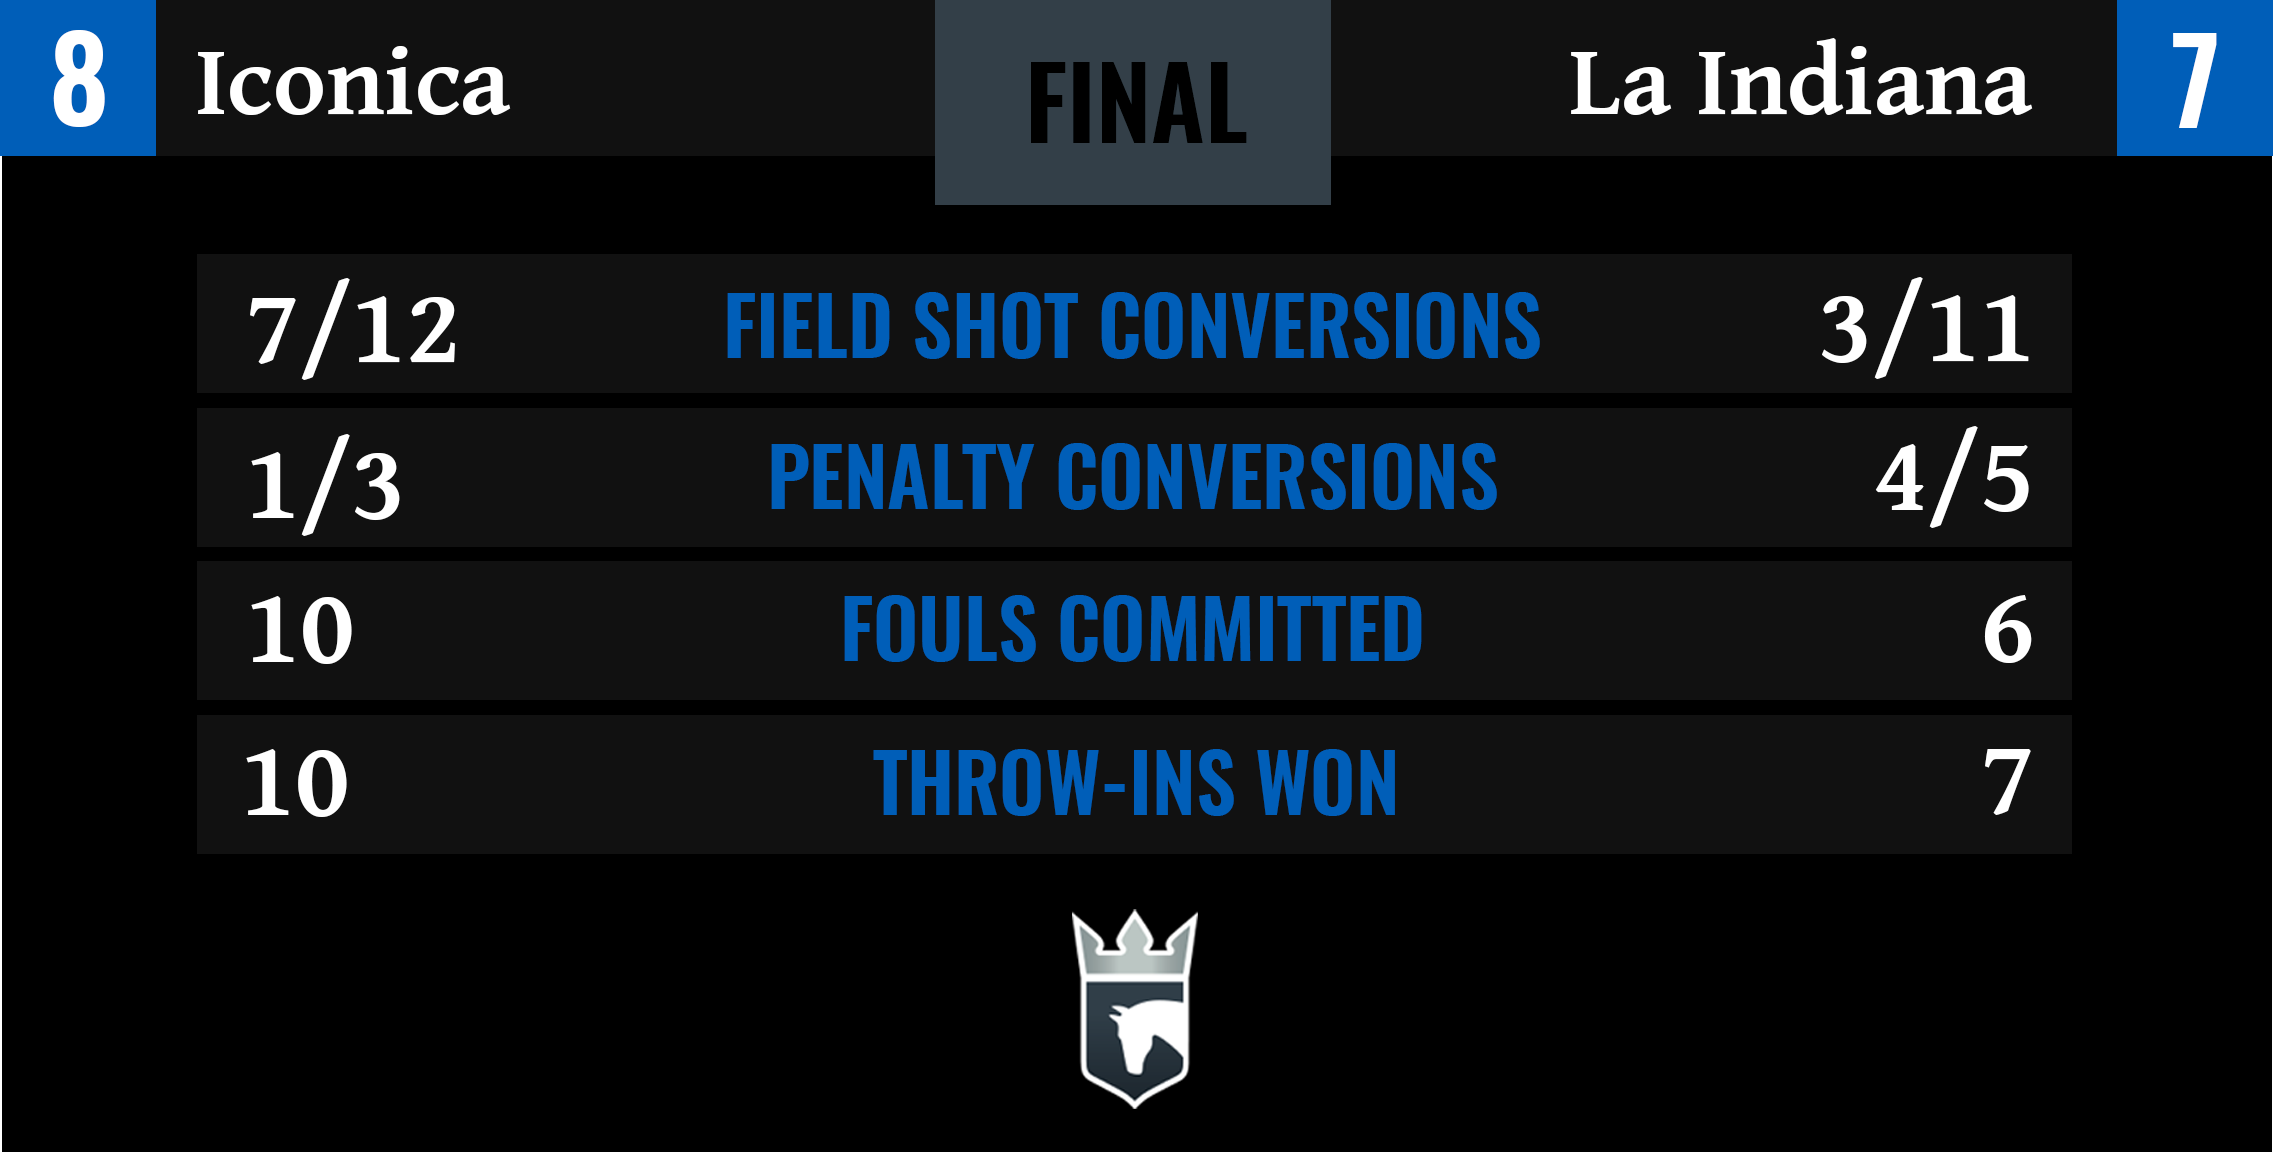 Iconica vs La Indiana Final Stats